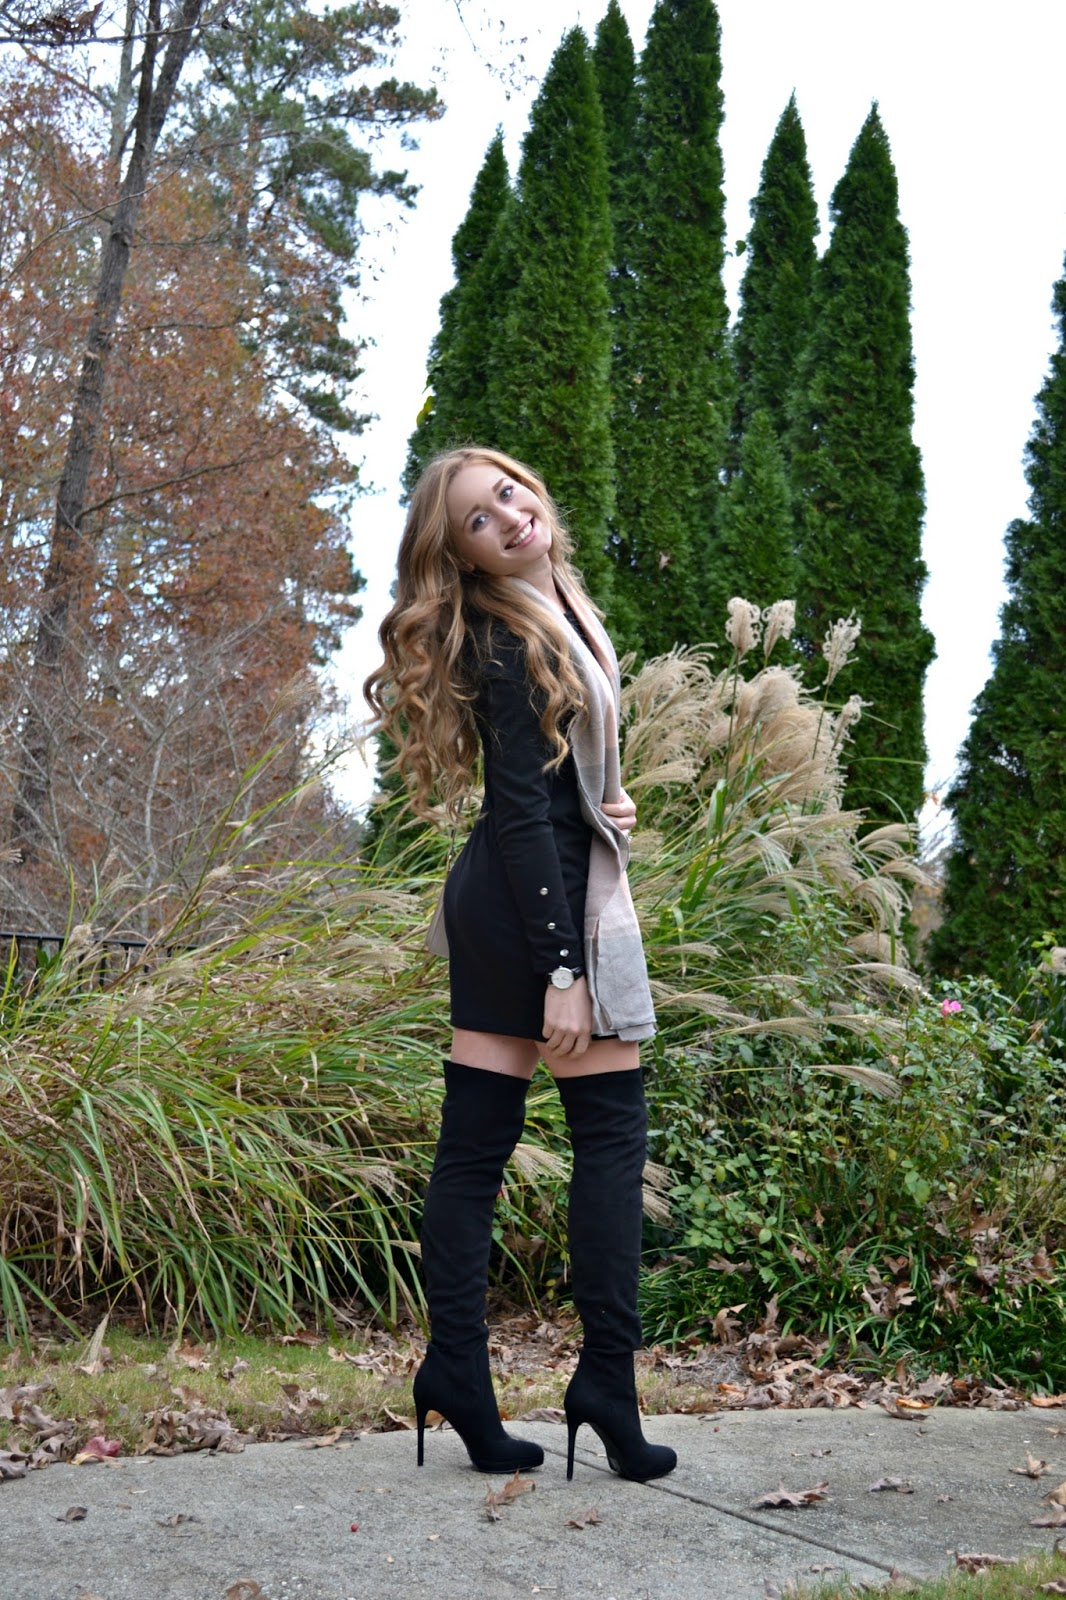 classy♡style: Over The Knee High Boots